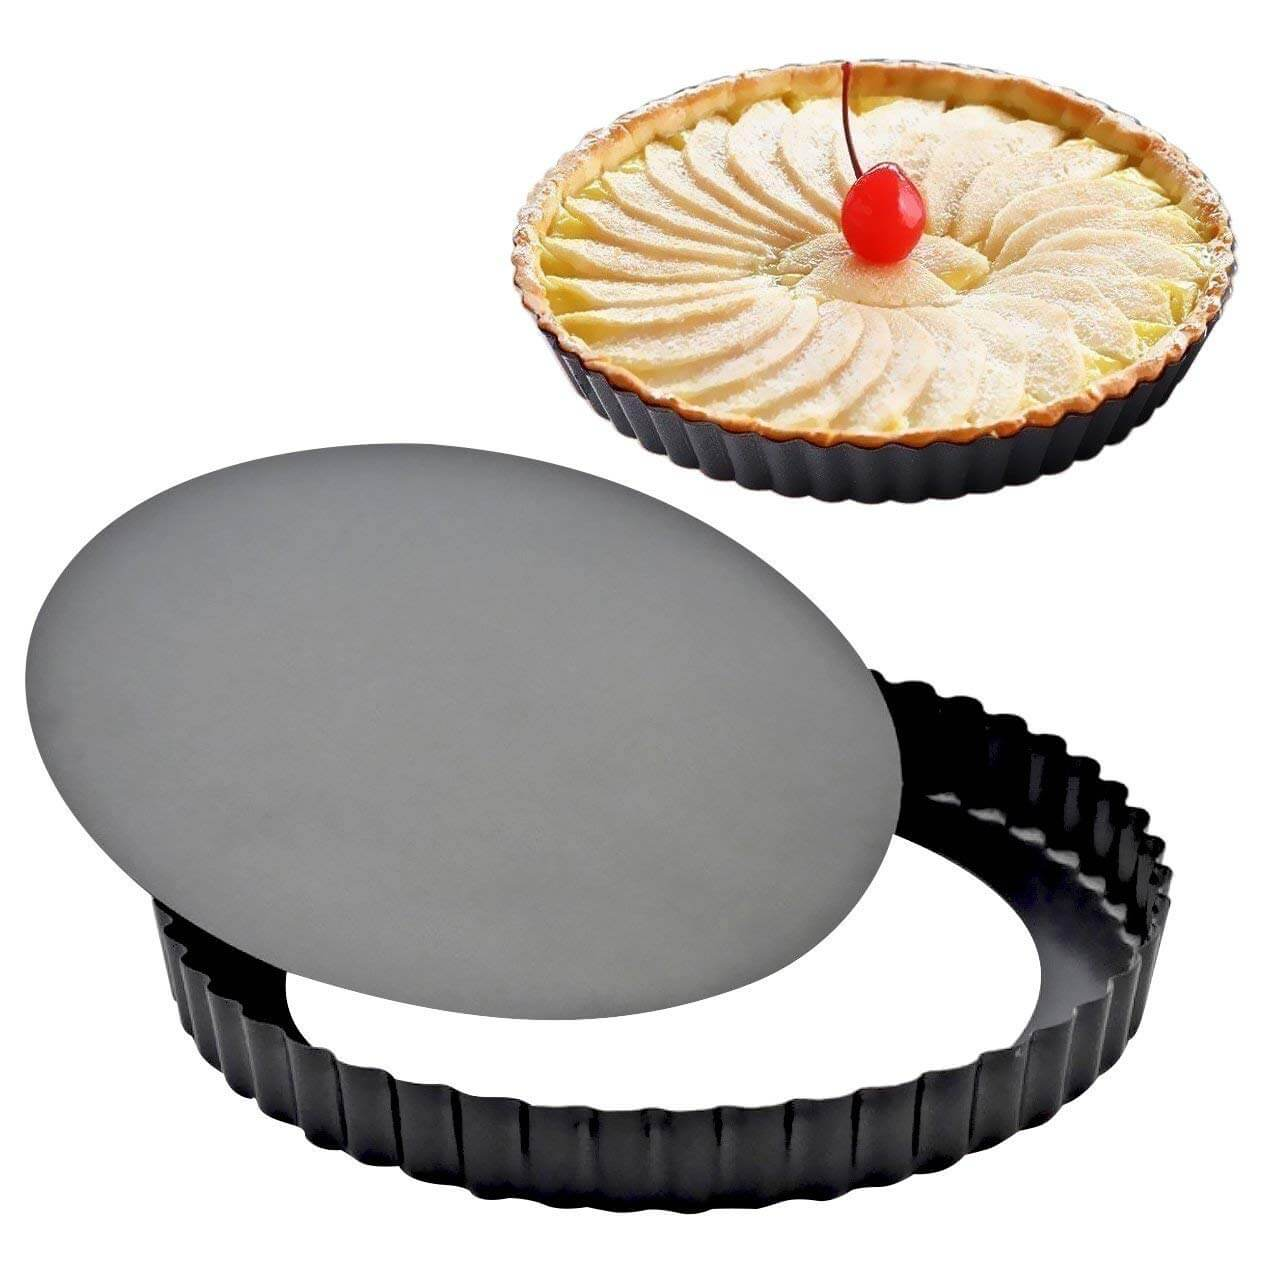 Attmu 8 Inches Non-Stick Removable Loose Bottom Quiche Tart Pan